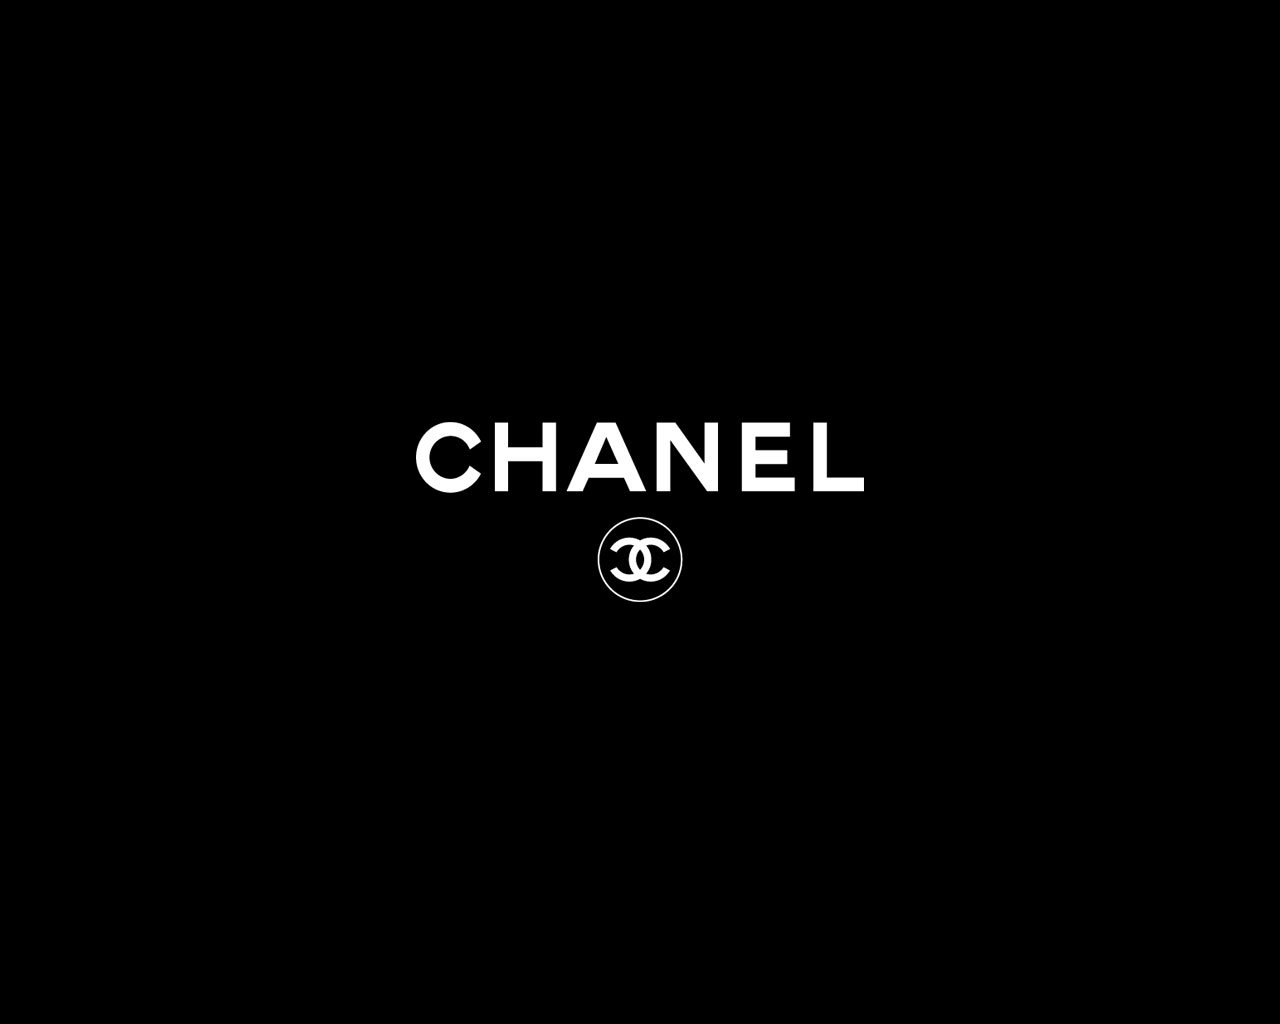 chanel KING 1280x1024